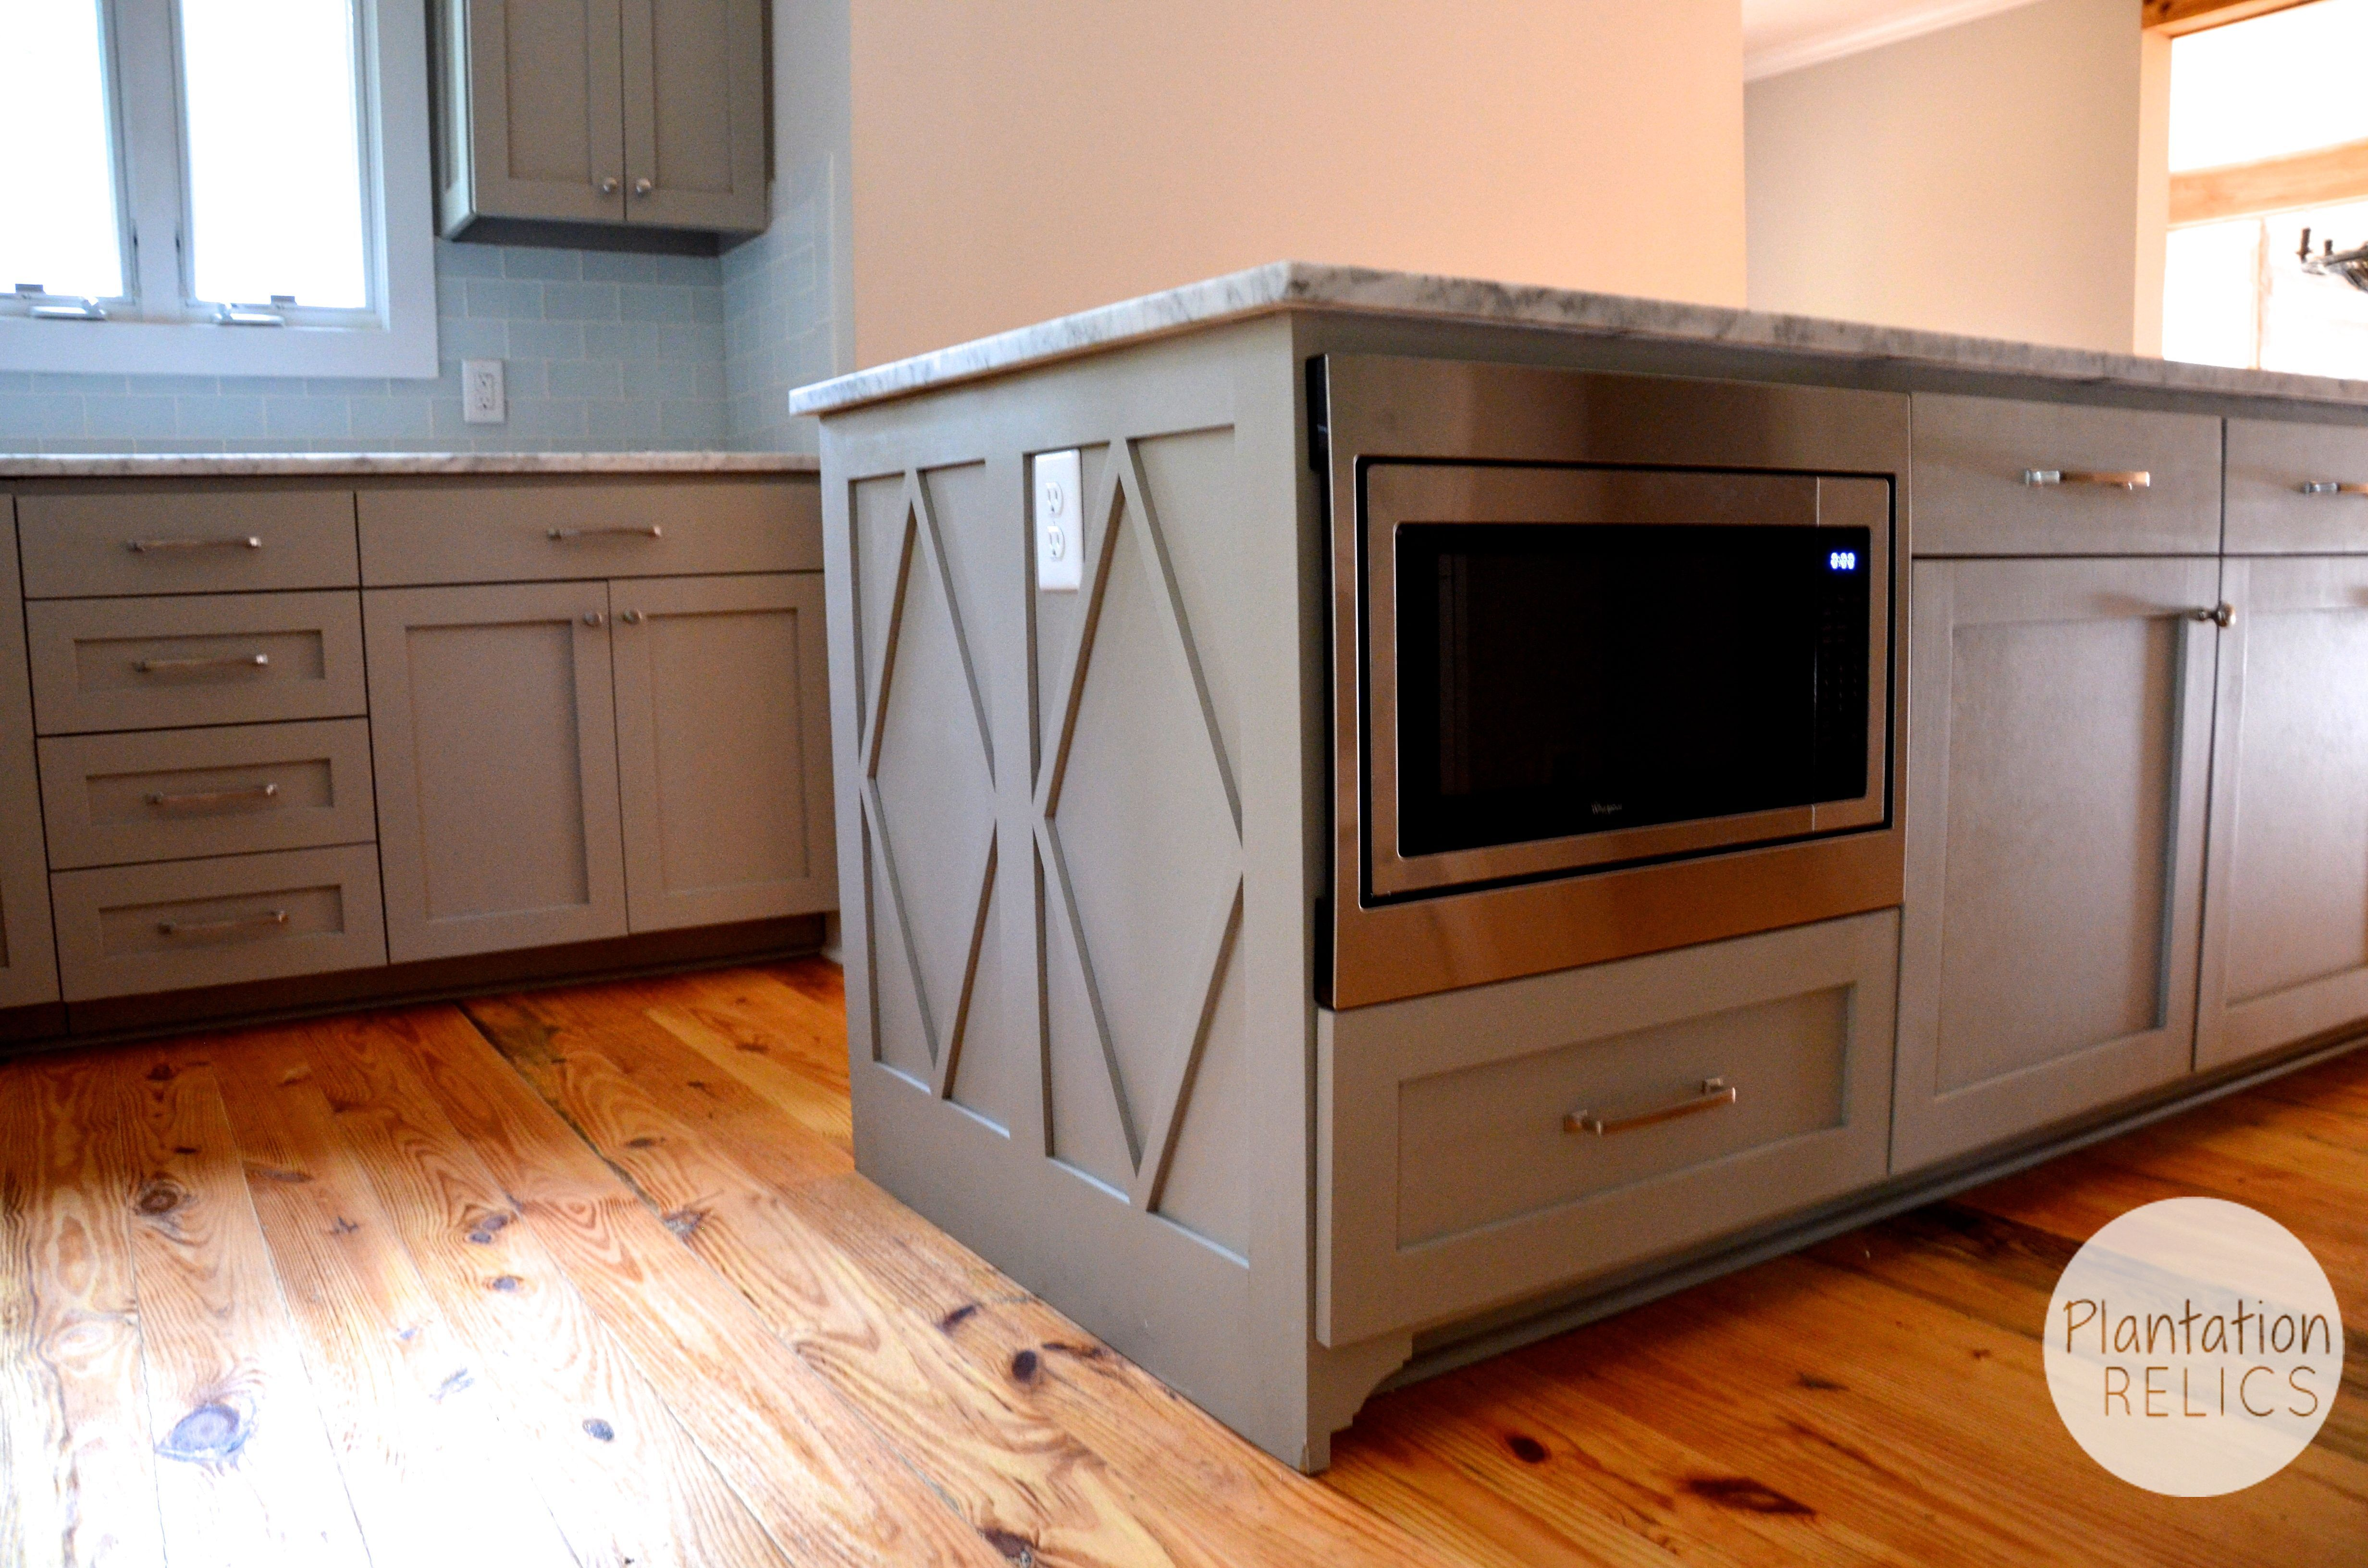 microwave in island | Dragon House | Pinterest | Kitchens and House